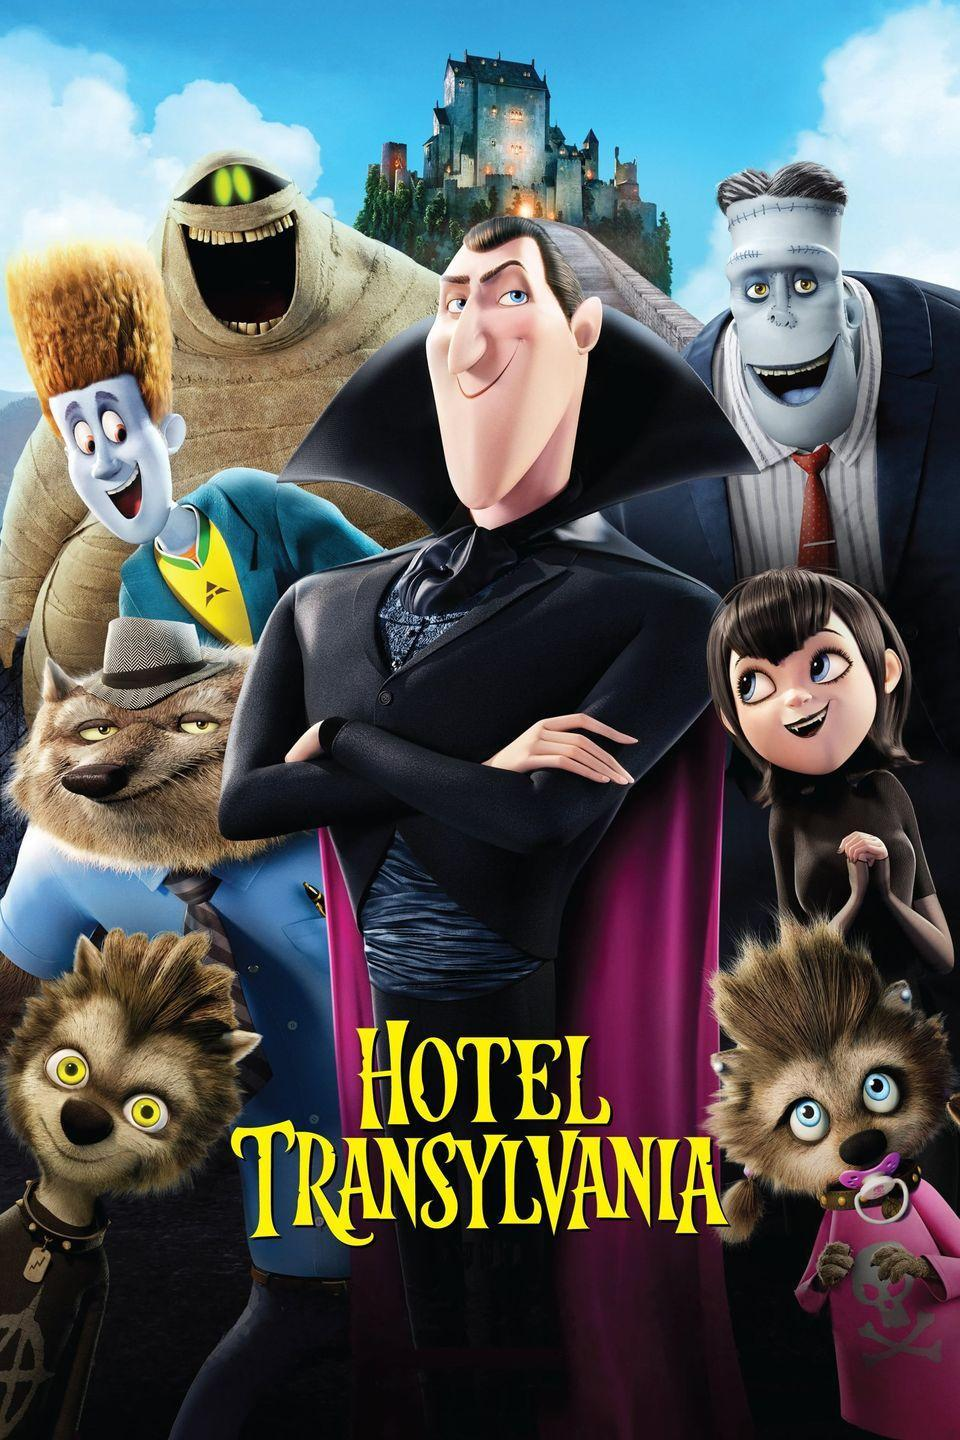 """<p>Dracula runs a hotel for monsters with his daughter, Mavis, but when Jonathan, a human comes to stay there, Dracula tries to kick him out, only to realize Mavis and Jonathan have fallen in love. </p><p><a class=""""link rapid-noclick-resp"""" href=""""https://www.amazon.com/Adam-Sandler/dp/B00APJLY0Q/?tag=syn-yahoo-20&ascsubtag=%5Bartid%7C10065.g.29354714%5Bsrc%7Cyahoo-us"""" rel=""""nofollow noopener"""" target=""""_blank"""" data-ylk=""""slk:Watch Now"""">Watch Now</a></p>"""